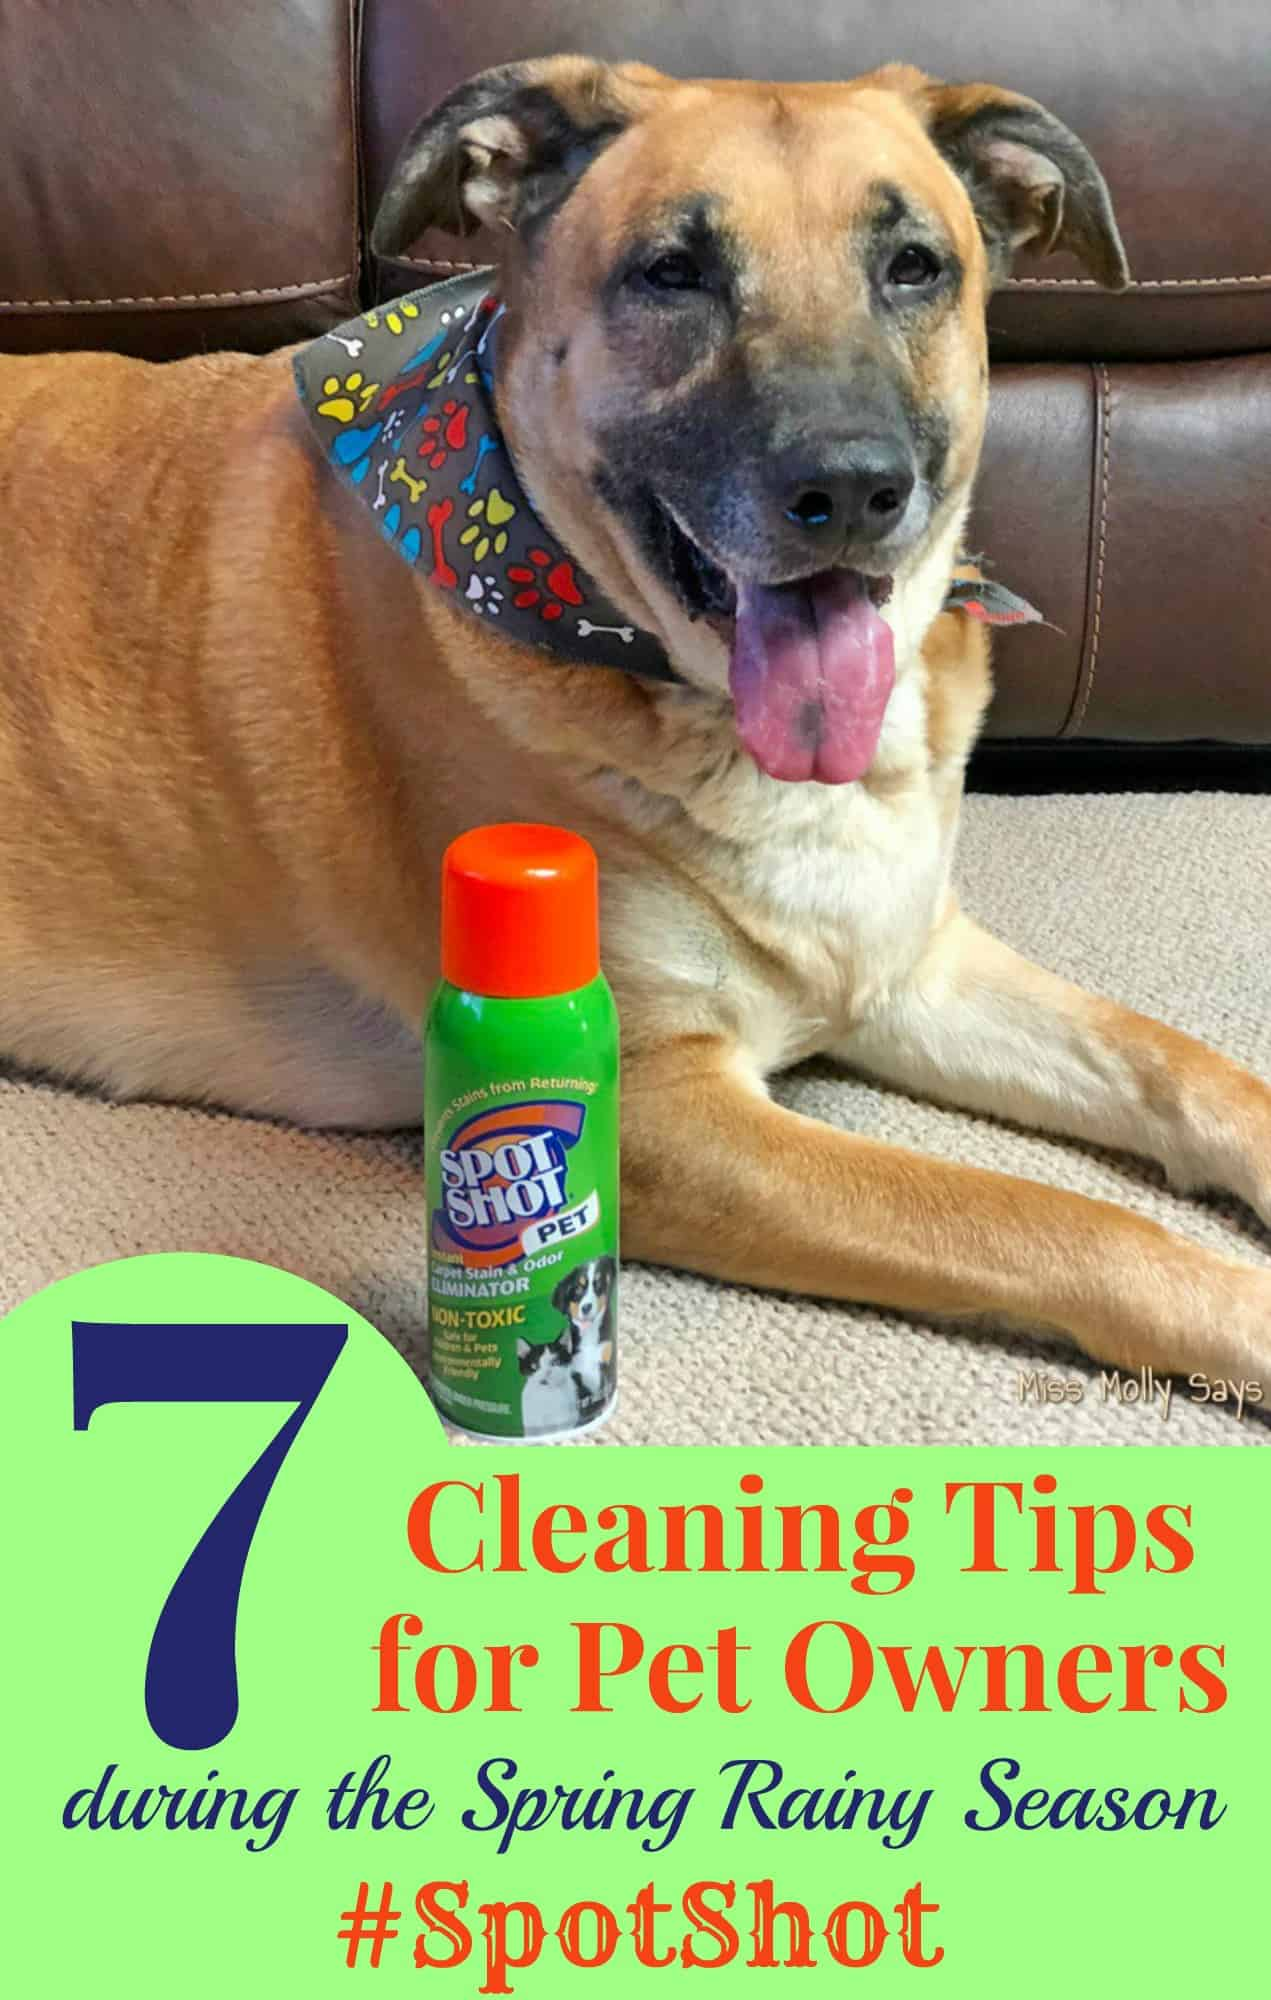 7 Cleaning Tips for Pet Owners during the Spring Rainy Season